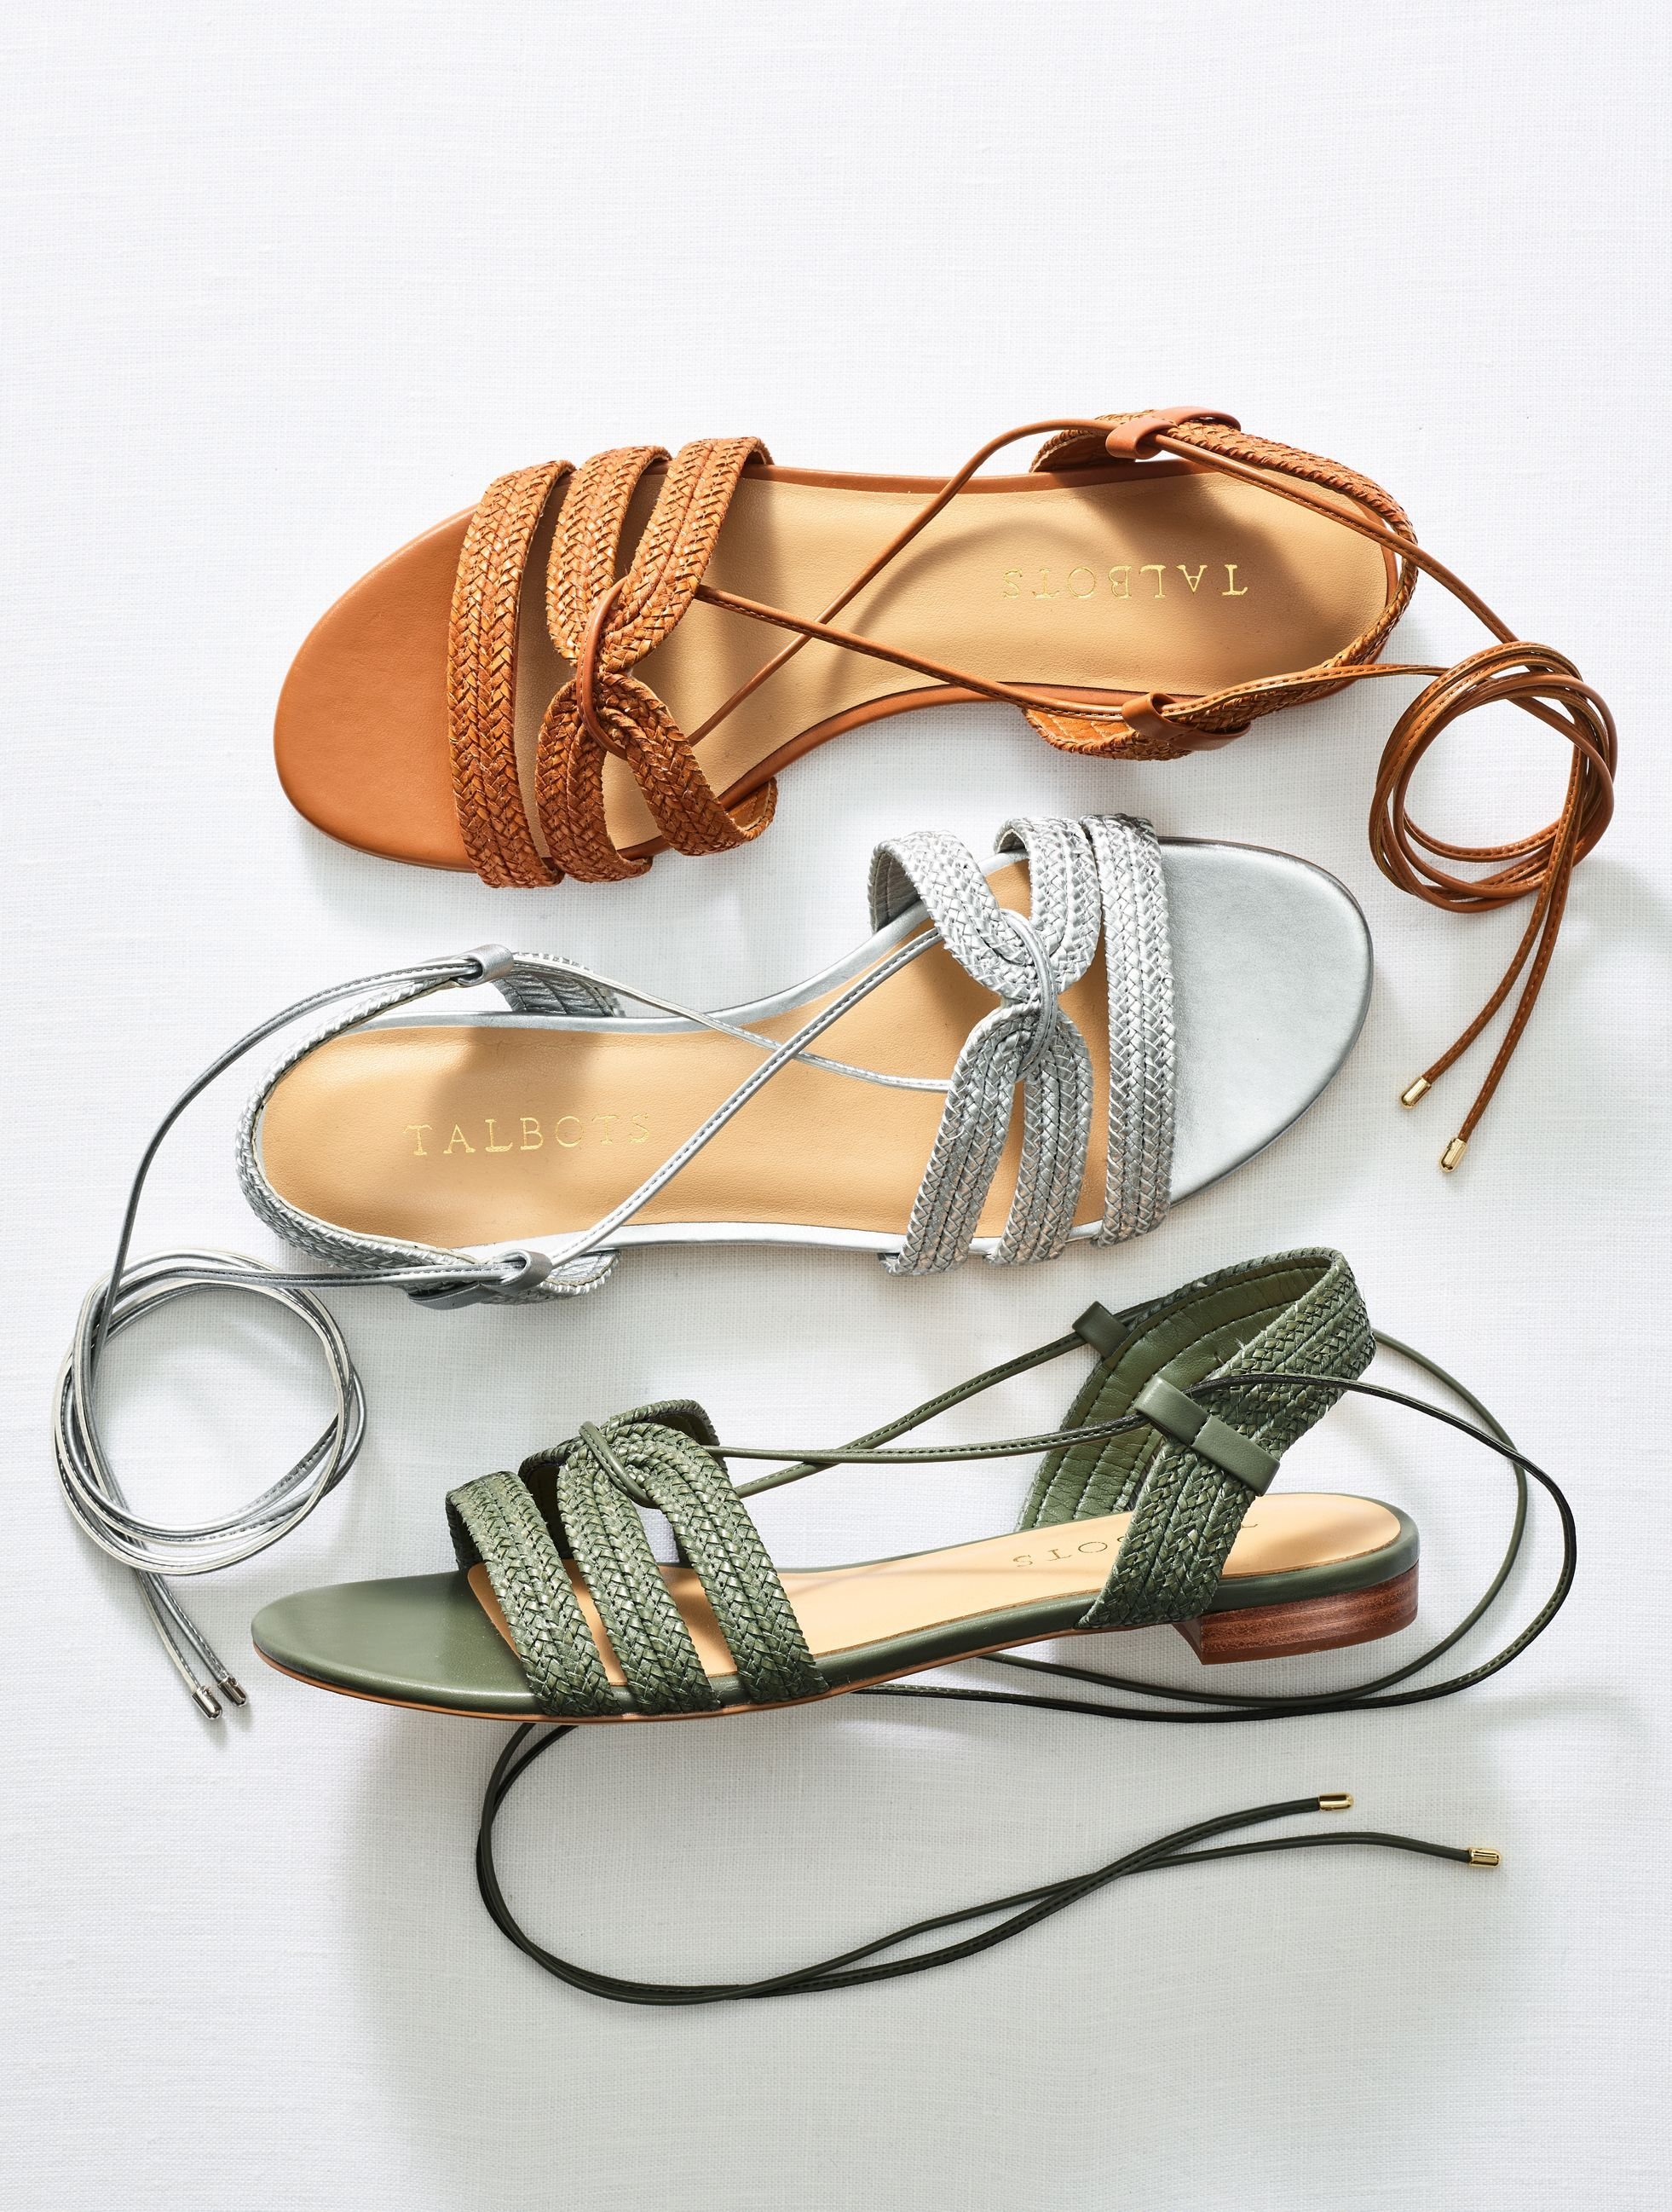 c2fb9d5c6ee6 The sandal of your dreams in all the season s most stylish colors. Wear  with shorts